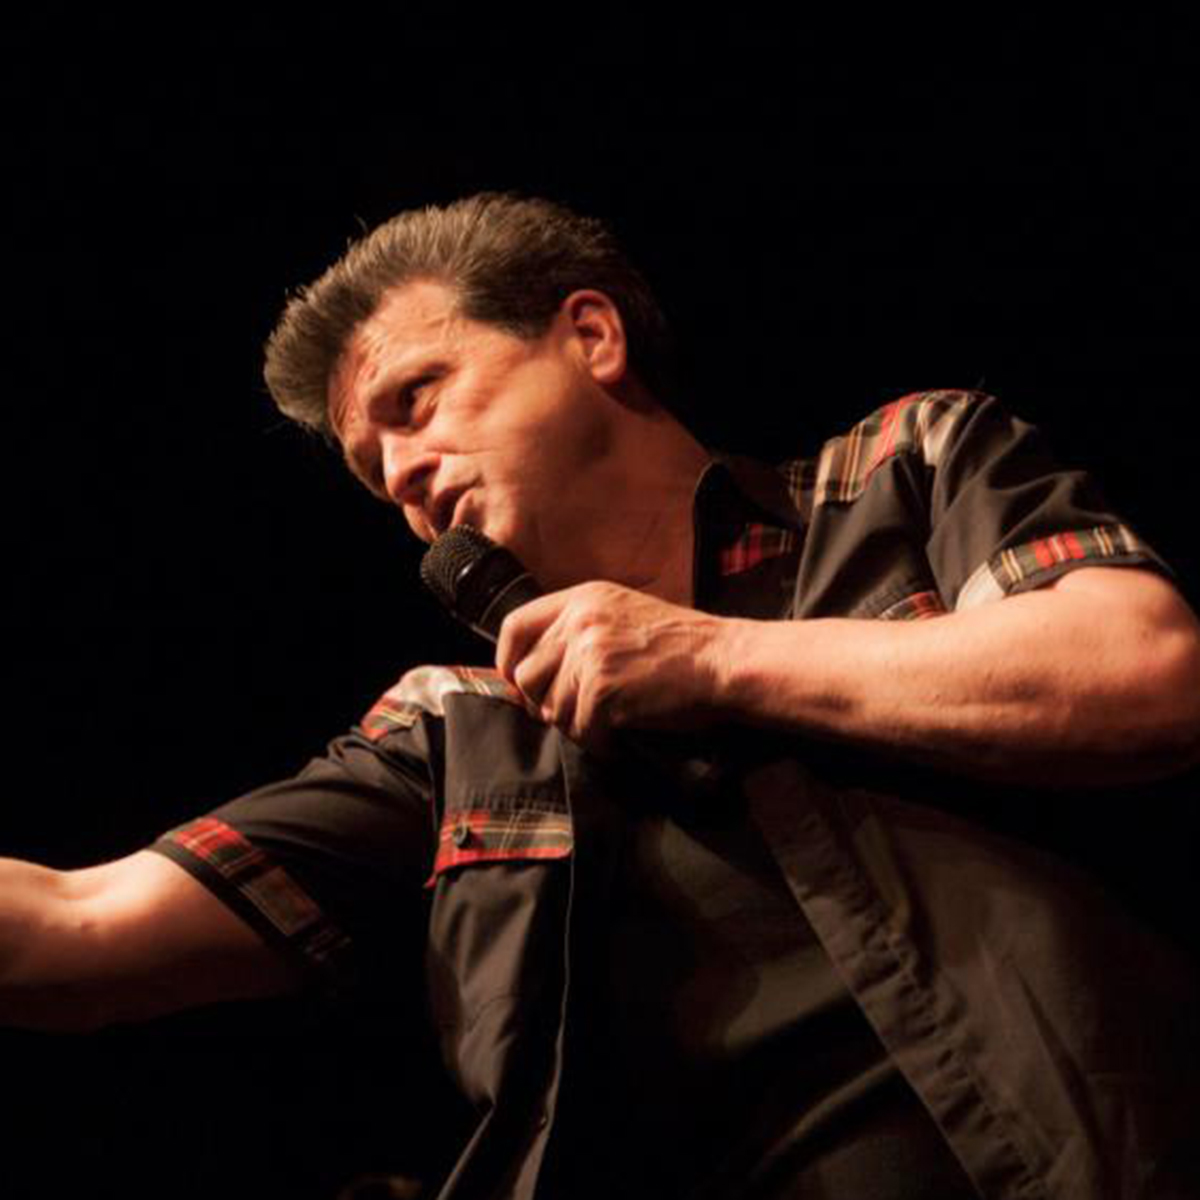 Bay City Rollers Lead Singer Les McKeown Latest Pop Star To Pass Away